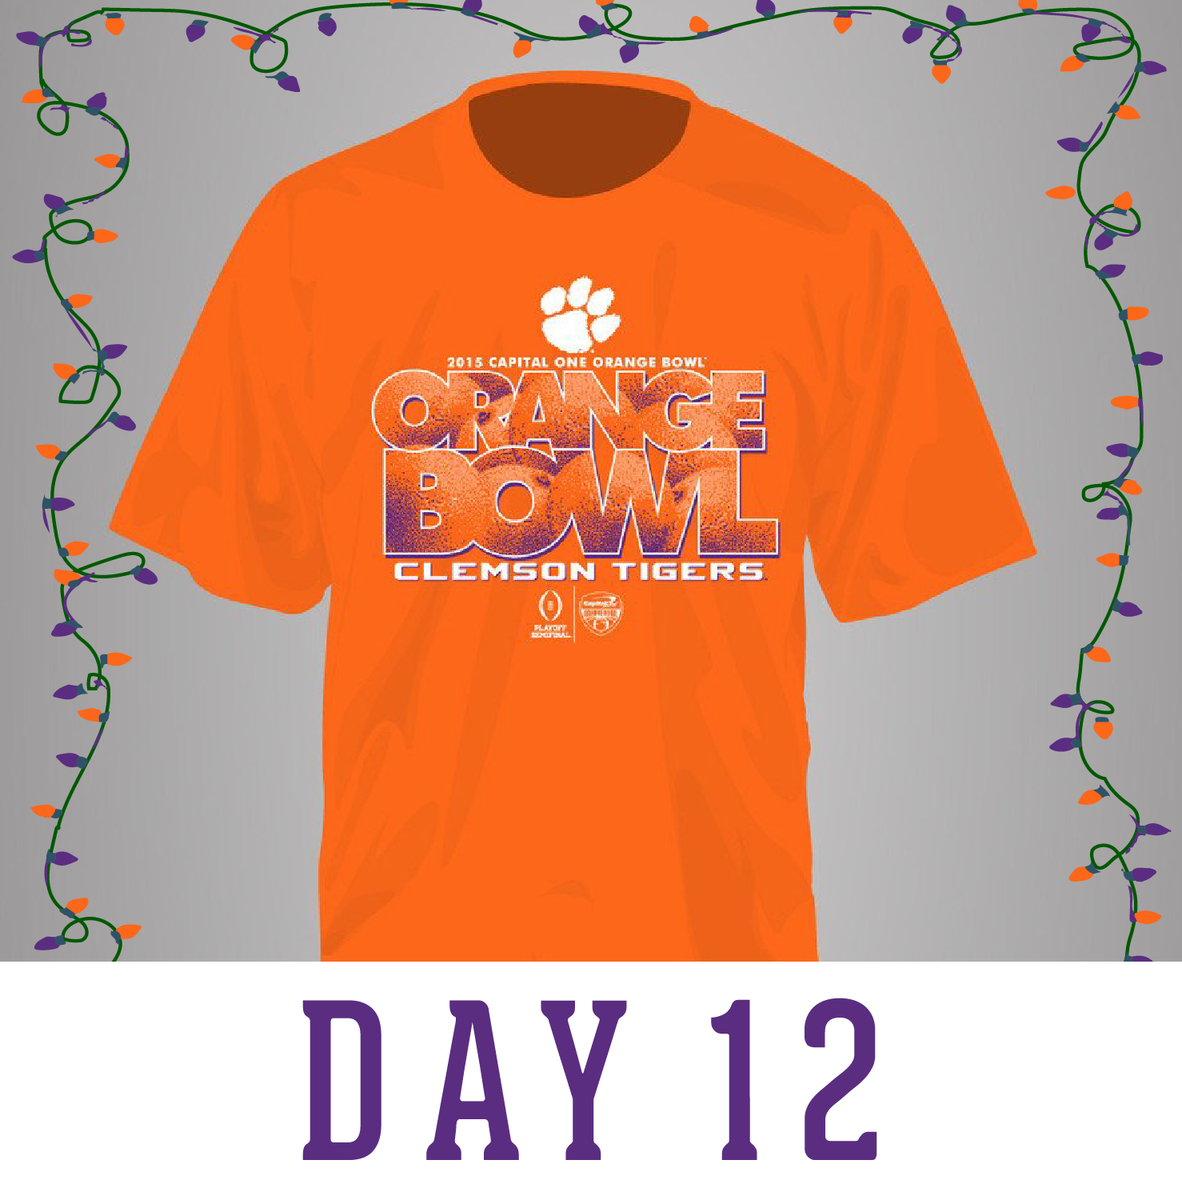 Our final #12DaysOfChristmas giveaway! RT for your chance to win it. #OrangeBowl #CFPlayoff #ALLIN #ClemsonChristmas https://t.co/bTs4jVfJTJ